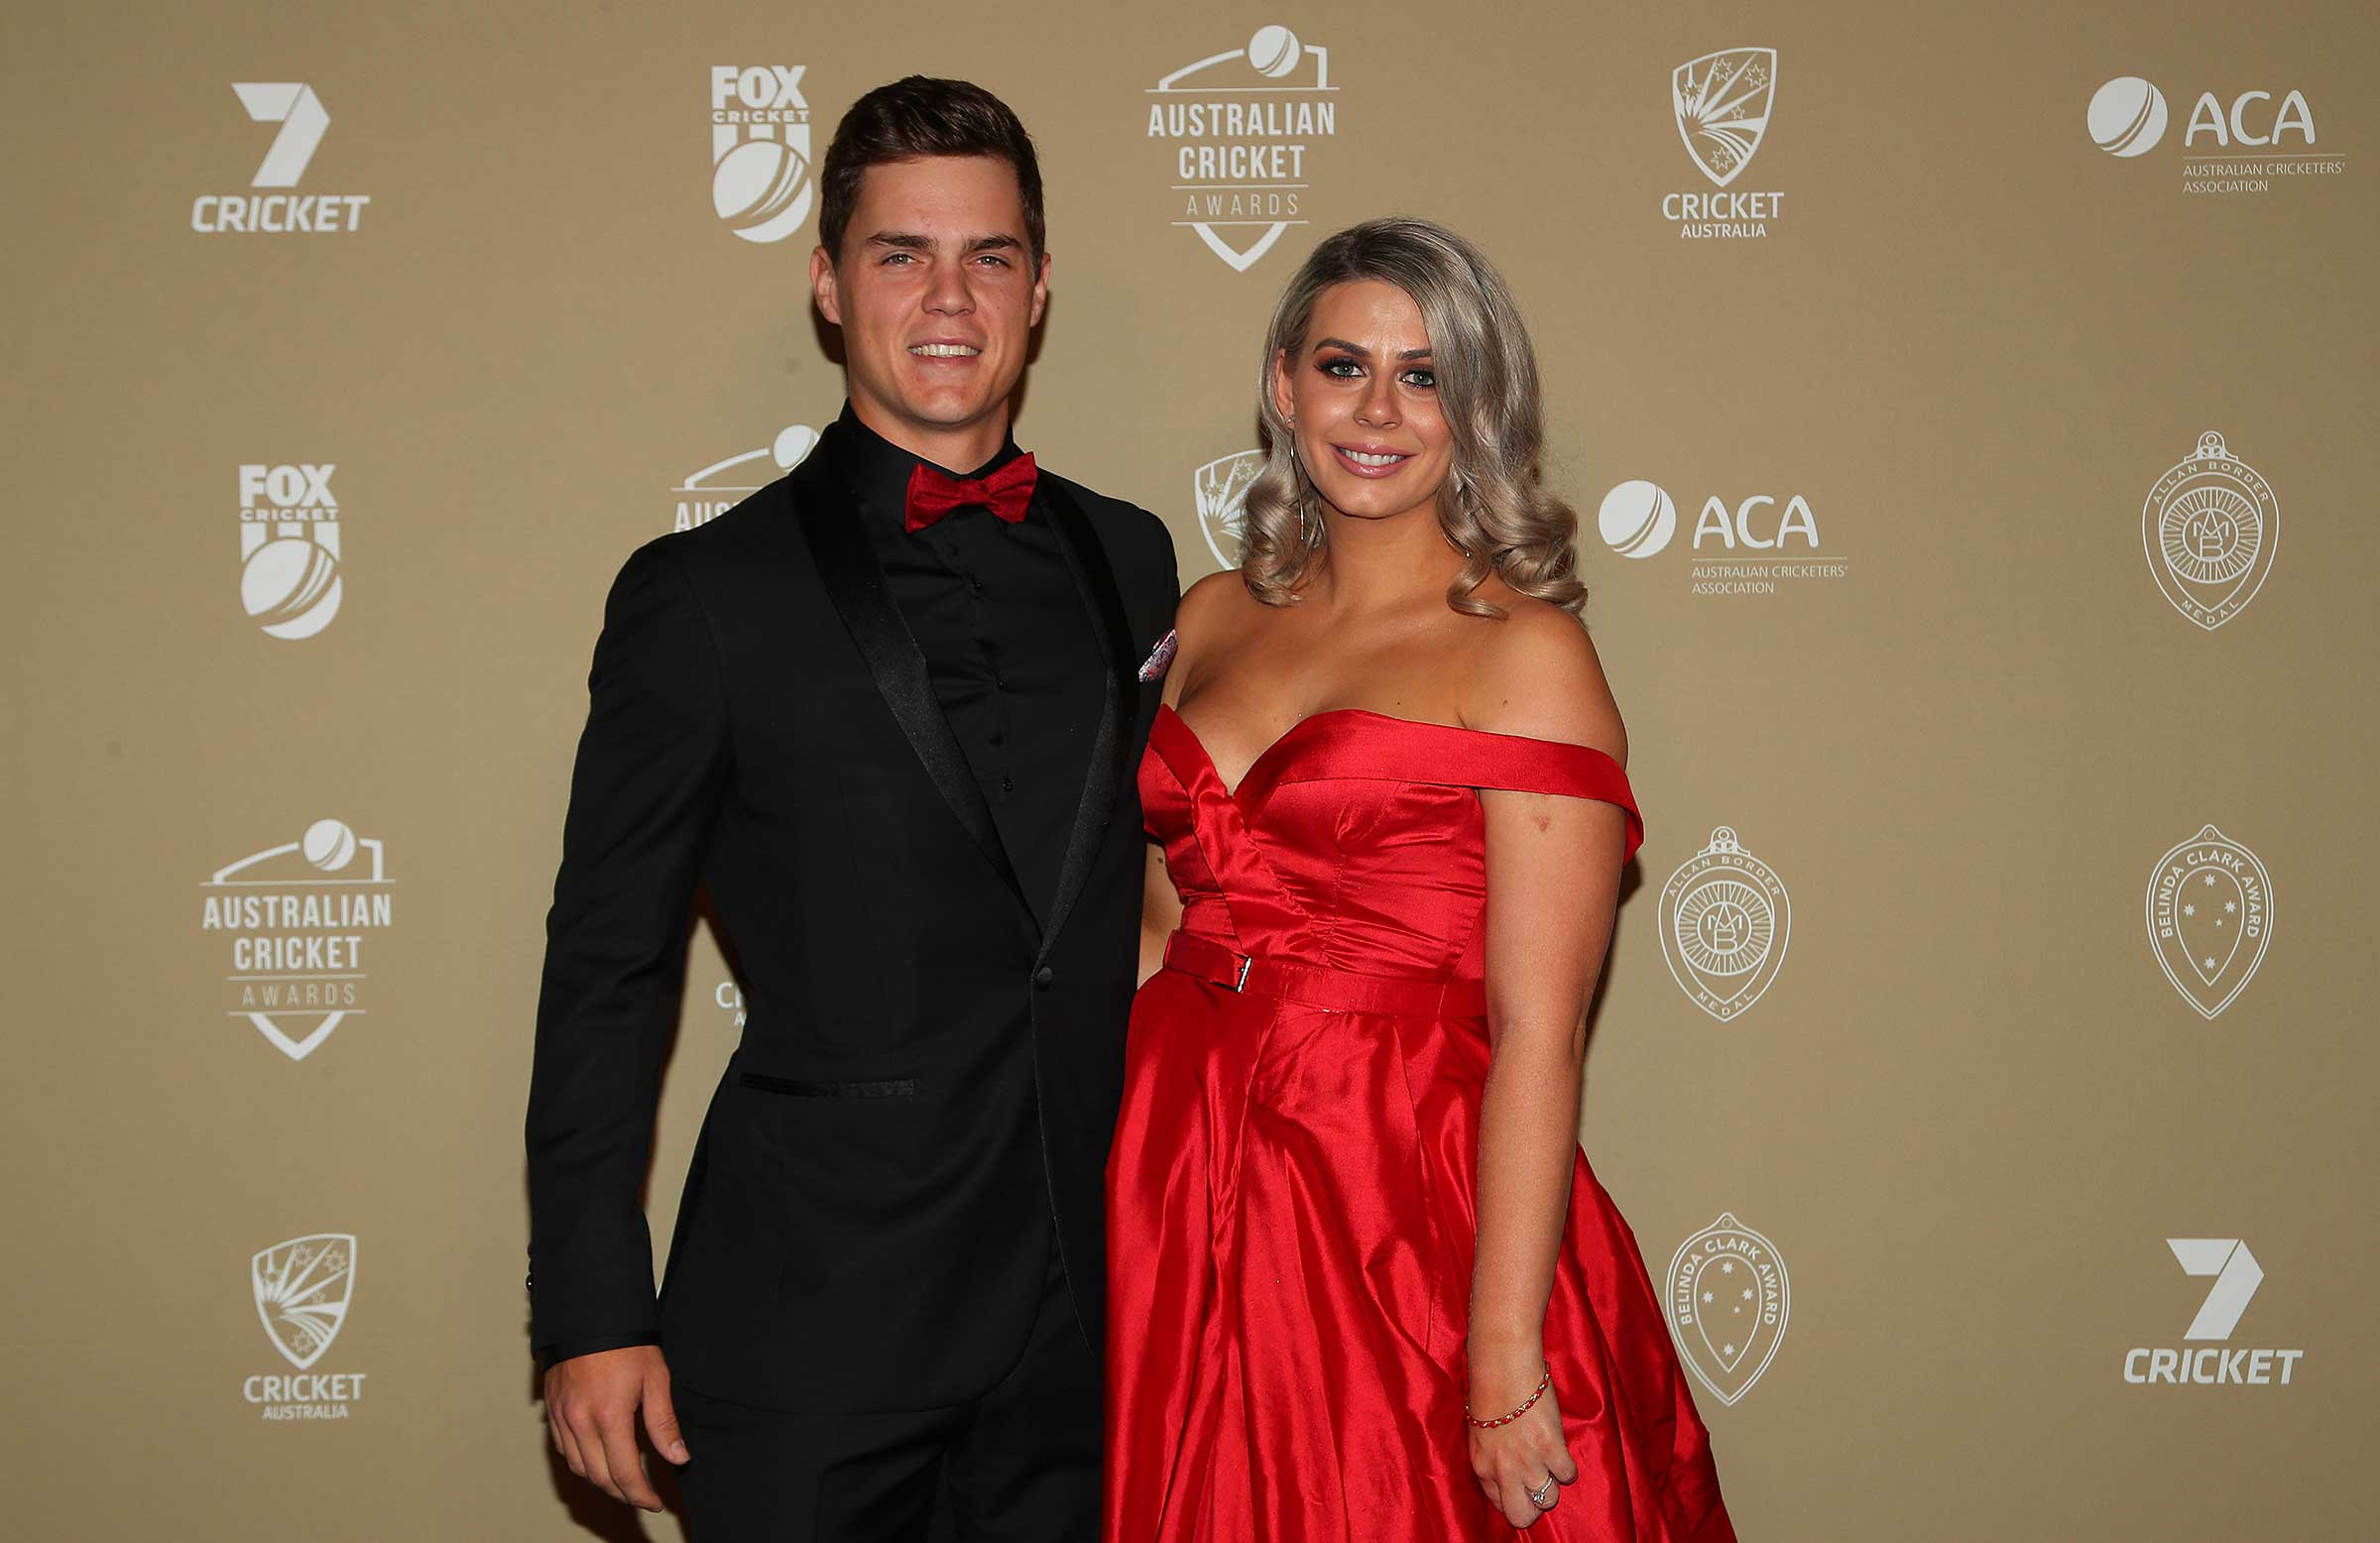 Mitch Swepson and partner Jessica Thorpe // Getty